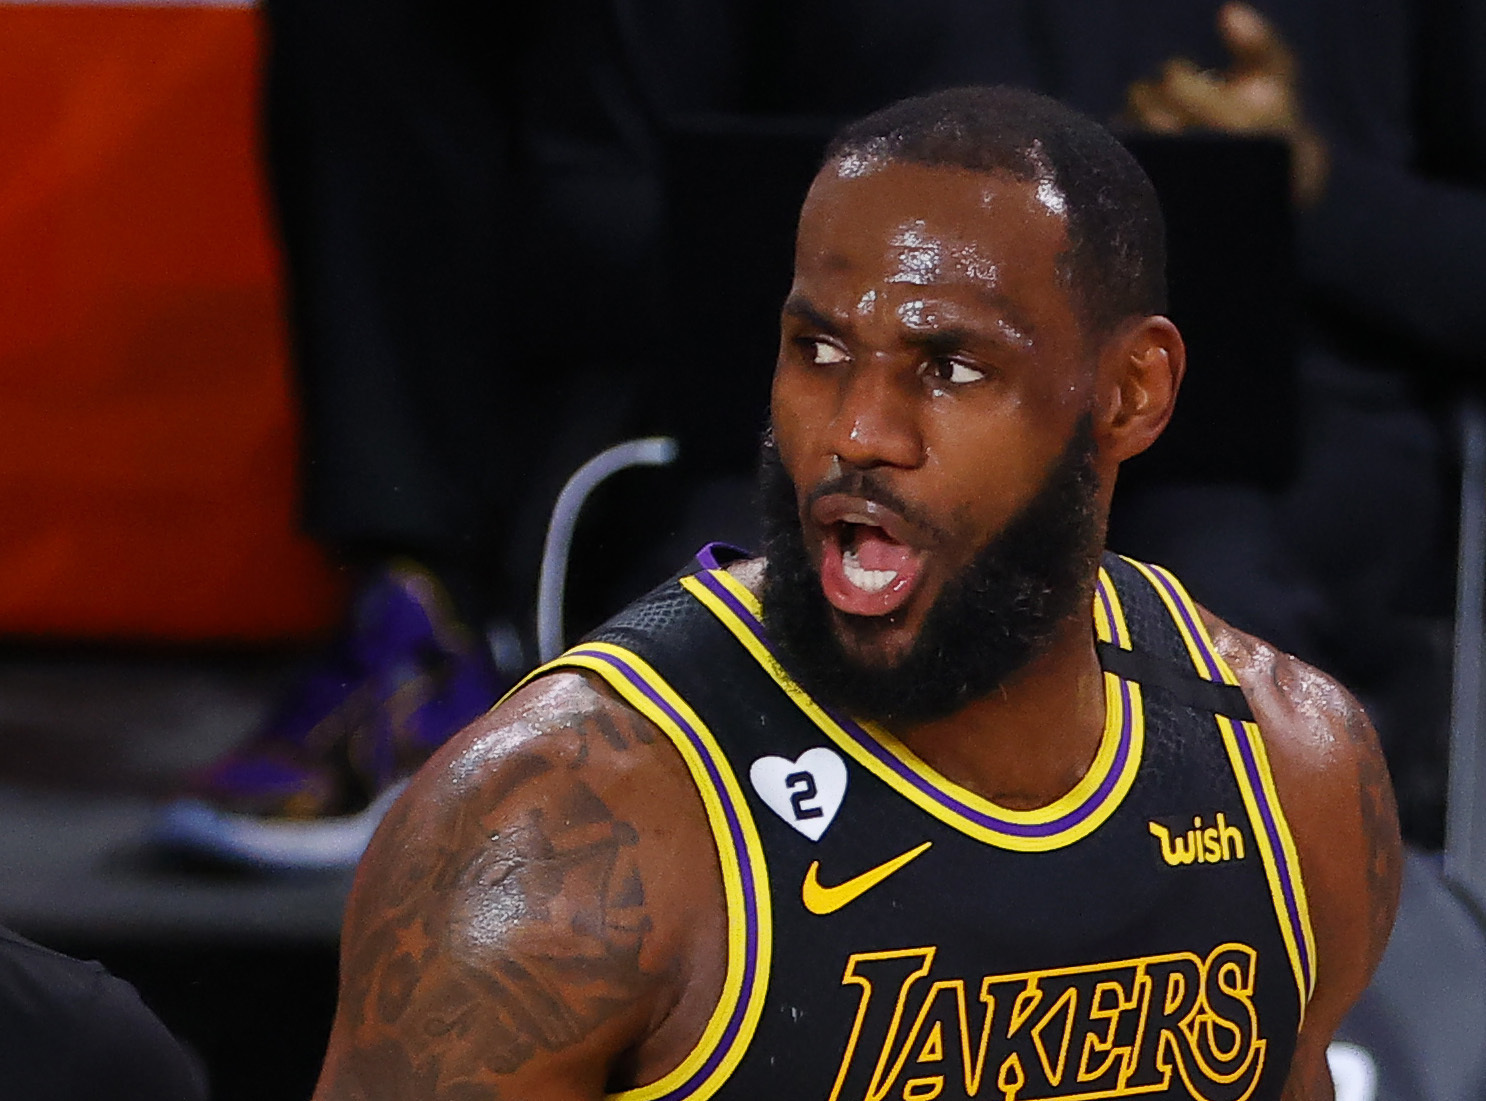 Portland Trail Blazers Vs Los Angeles Lakers Game 5 Free Live Stream 8 29 20 Watch Lebron James In Nba Playoffs Online Time Tv Channel Nj Com